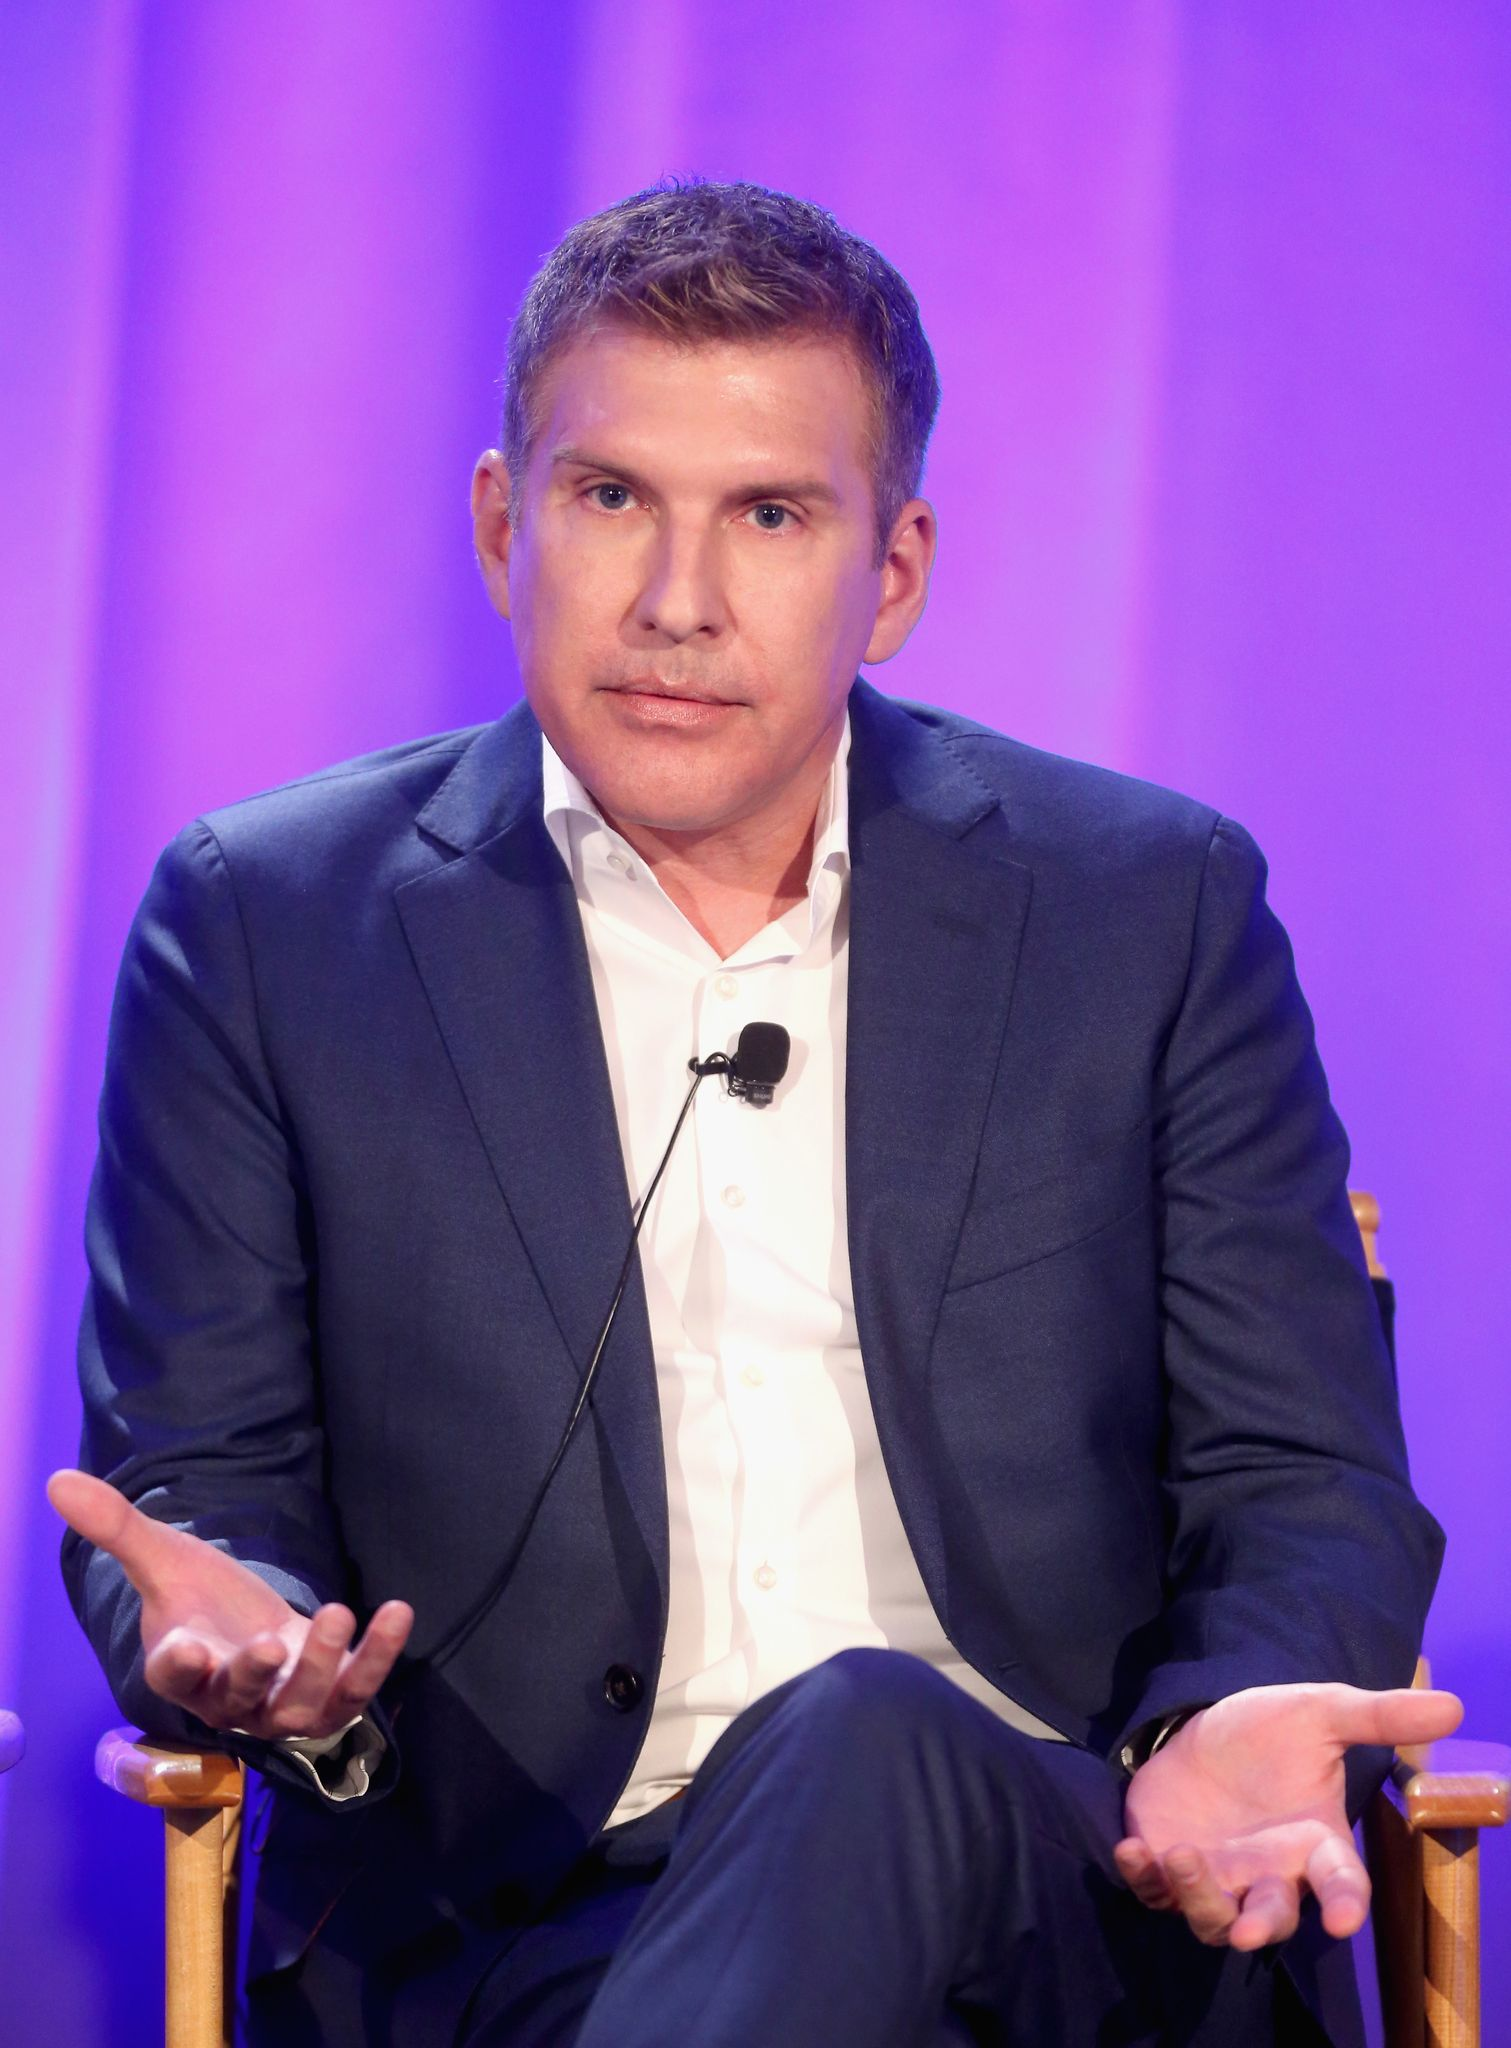 Todd Chrisley speaks during the 'Chrisley Knows Best' panel at the NBCUniversal Summer Press Day on April 1, 2016 | Photo: Getty Images